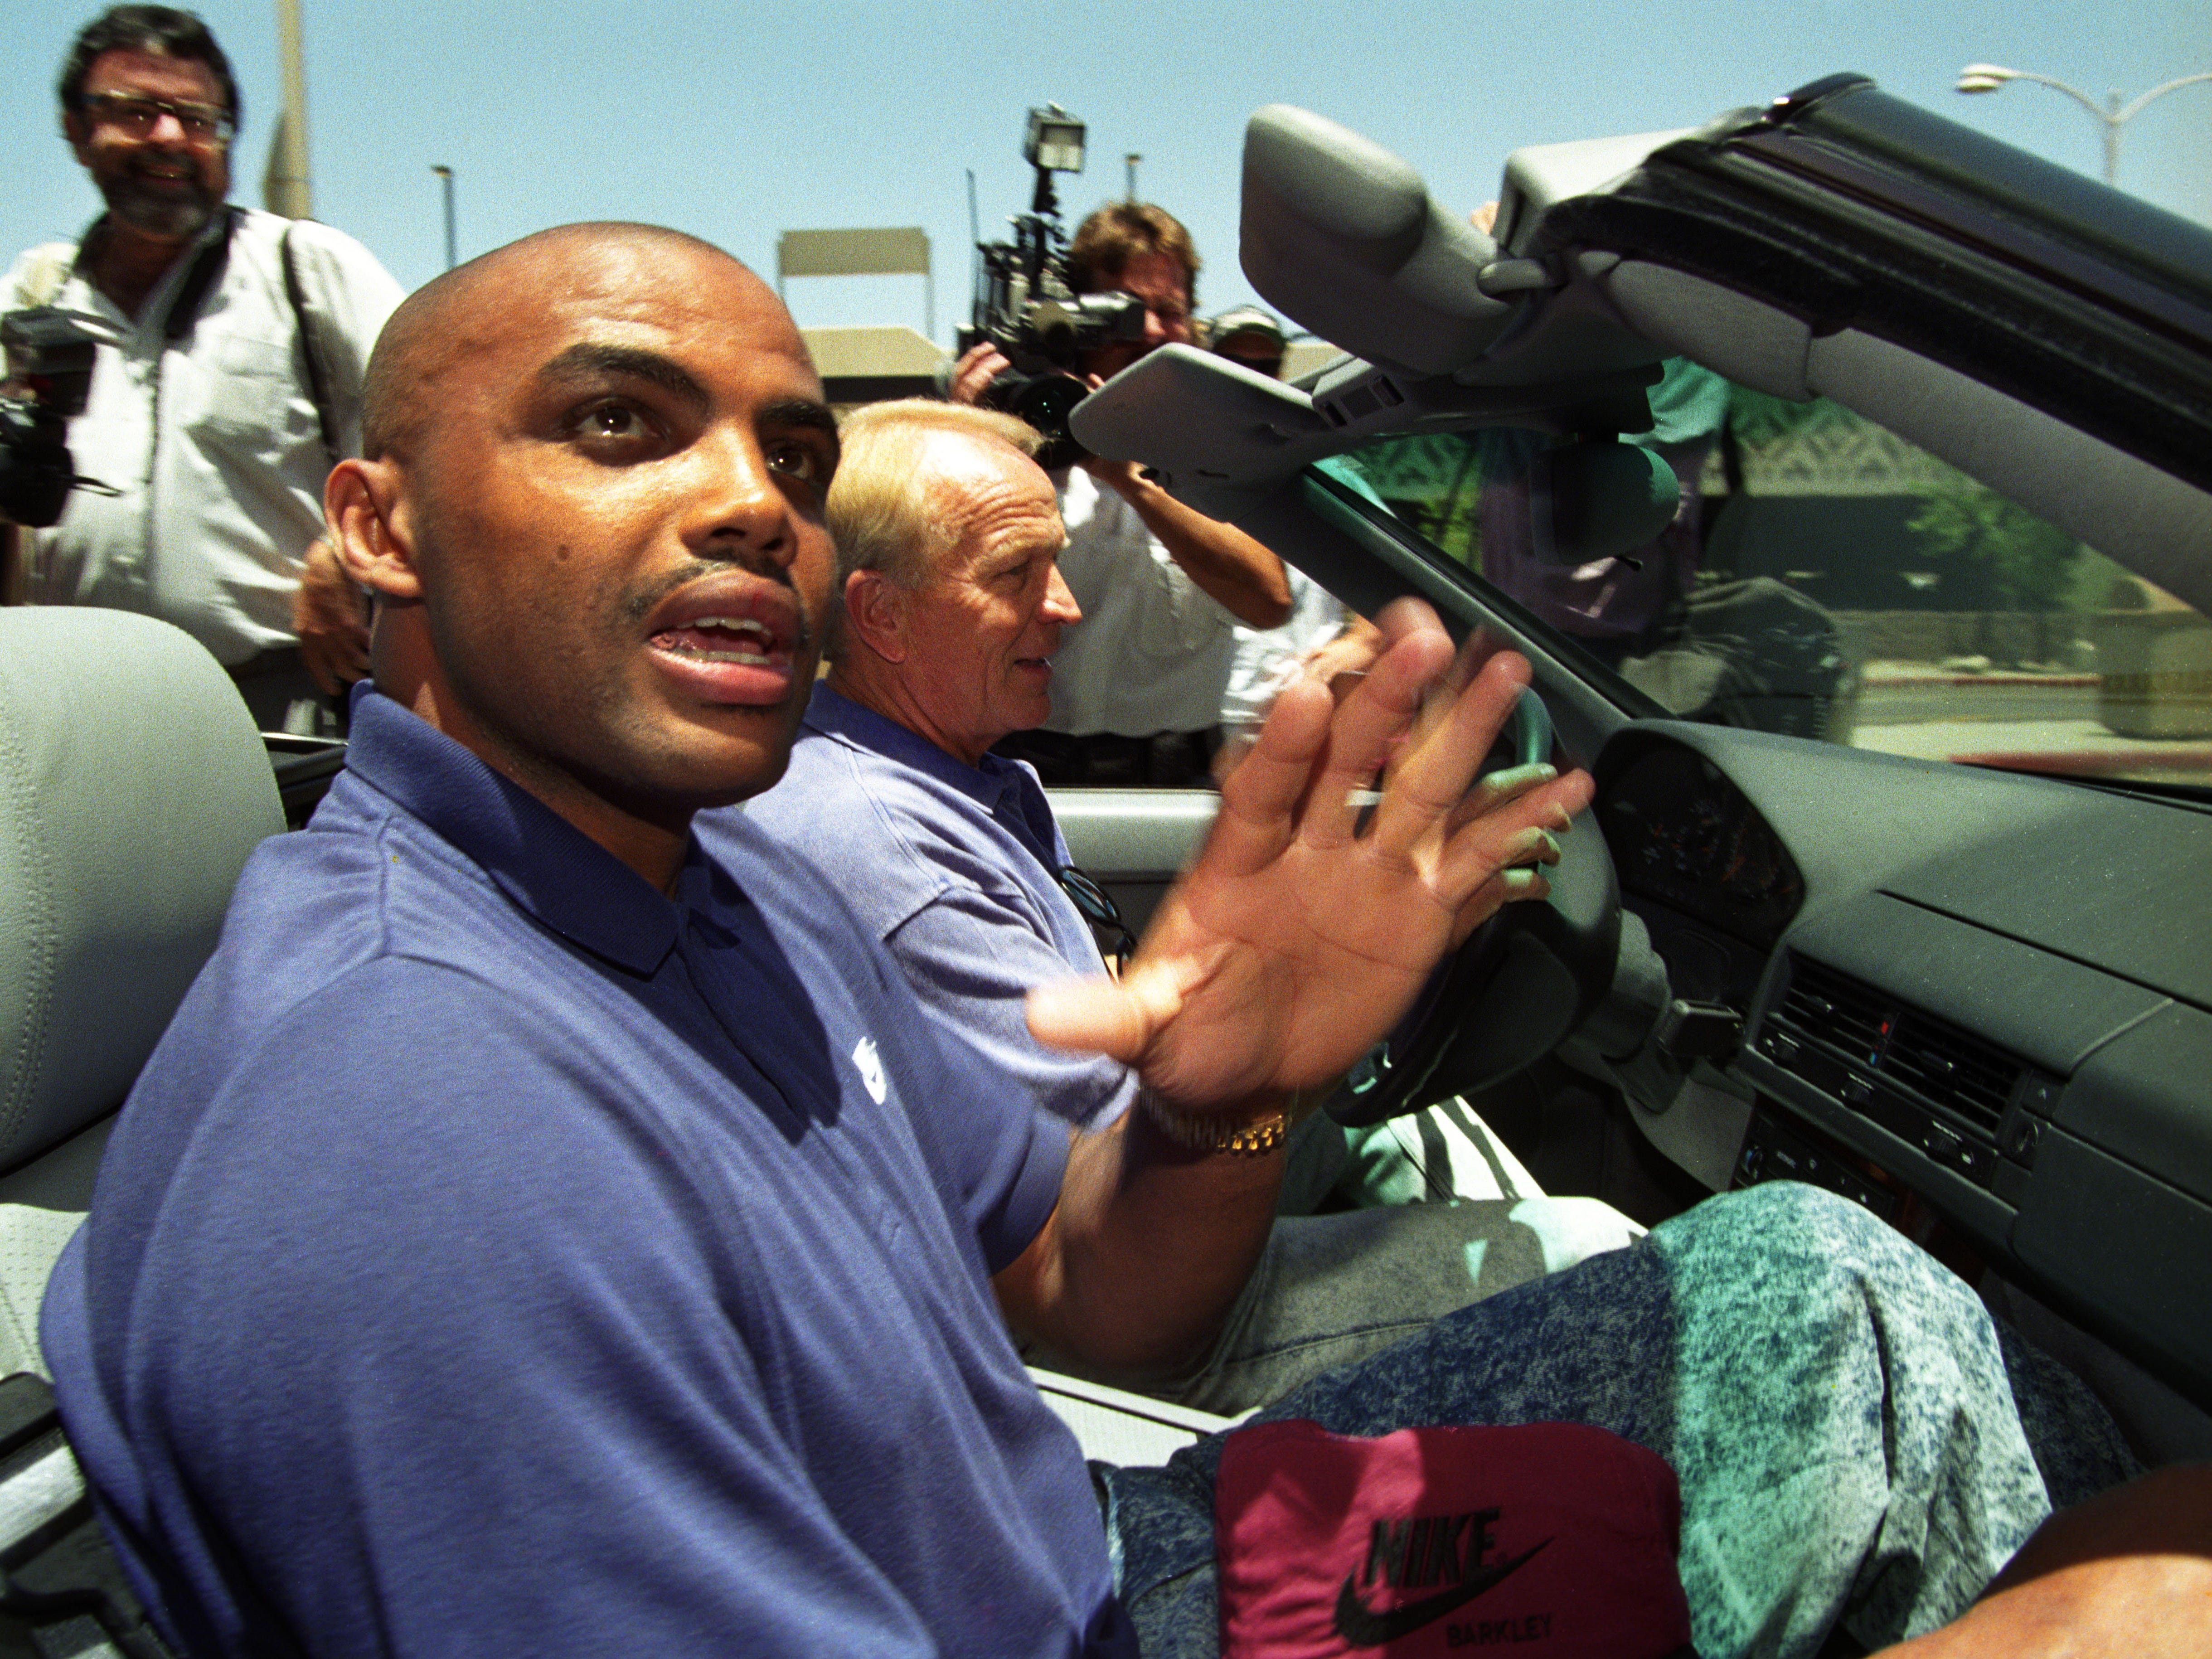 Cotton Fitzsimmons picks up Charles Barkley at Phoenix Sky Harbor International Airport in 1992.